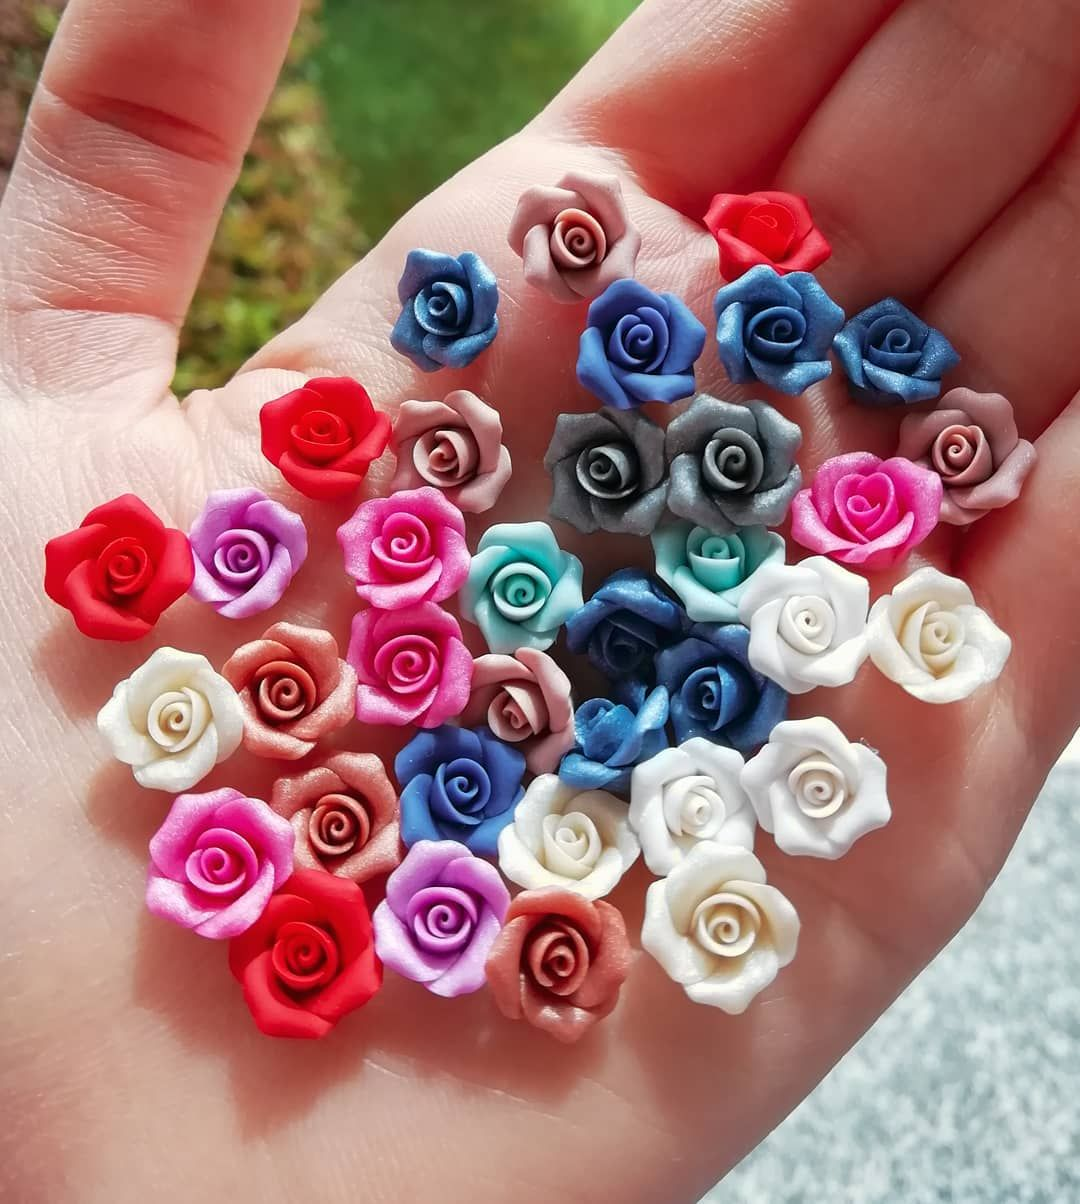 Che ne dite, vi piace questo nuovo formato di roselline? 🌹😍 . . #roses #miniatures #miniroses #colorful #colors #spring #nature #fimo #polymerclay #clayart #artist #madeinitaly #madebyme #handcraft #handmade #crafty #craftersofinstagram #fimolovers #staedtler